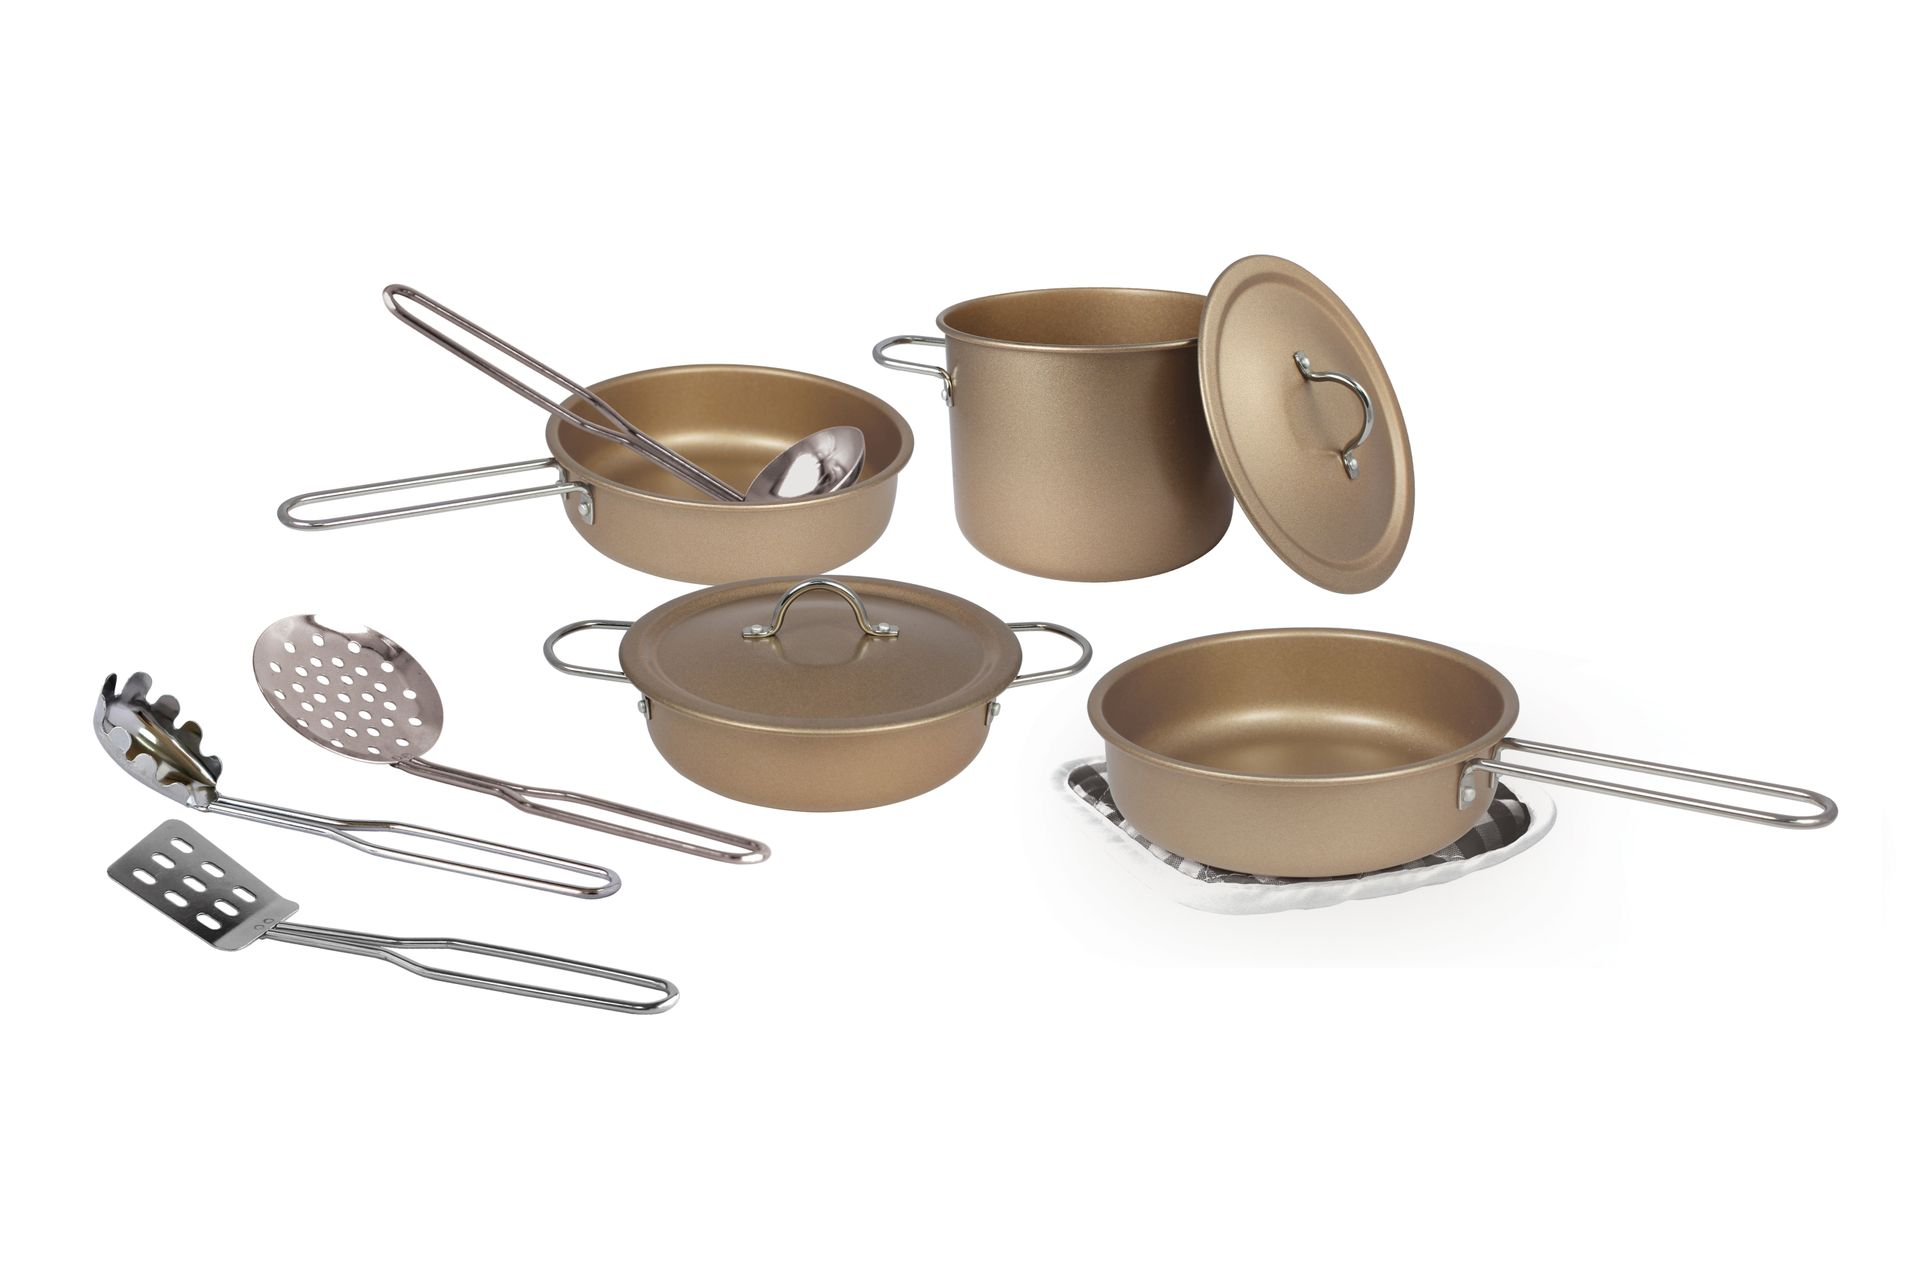 Magni - Cookware set in copper, 11 pcs (2939)